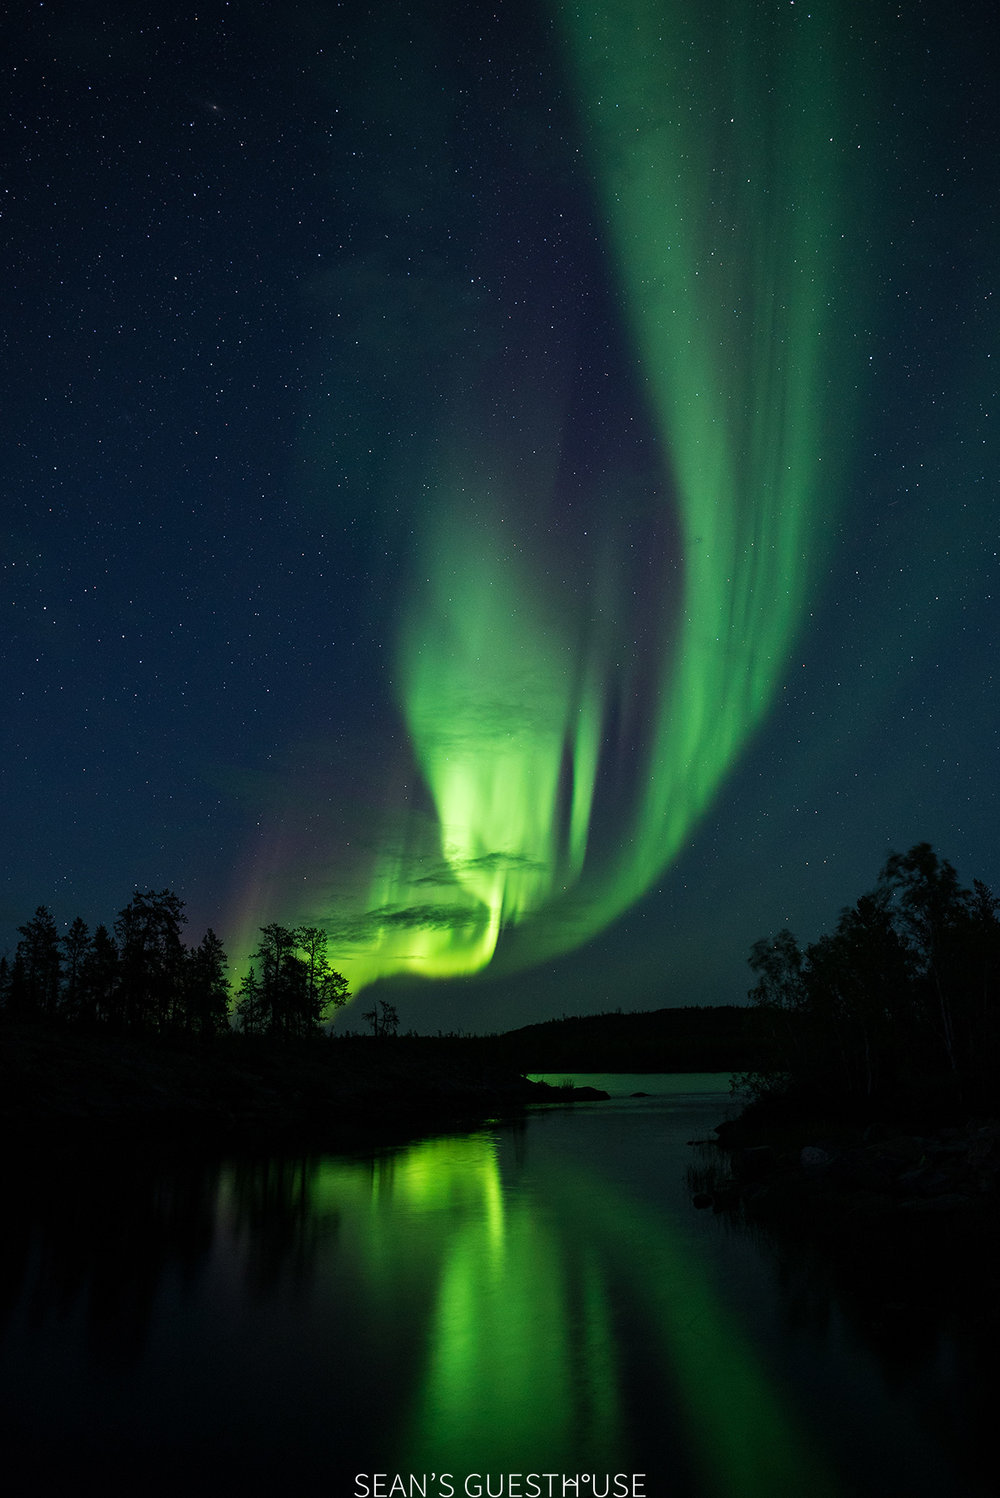 Sean's Guesthouse - Autumn Northern Lights Canada - 1.jpg